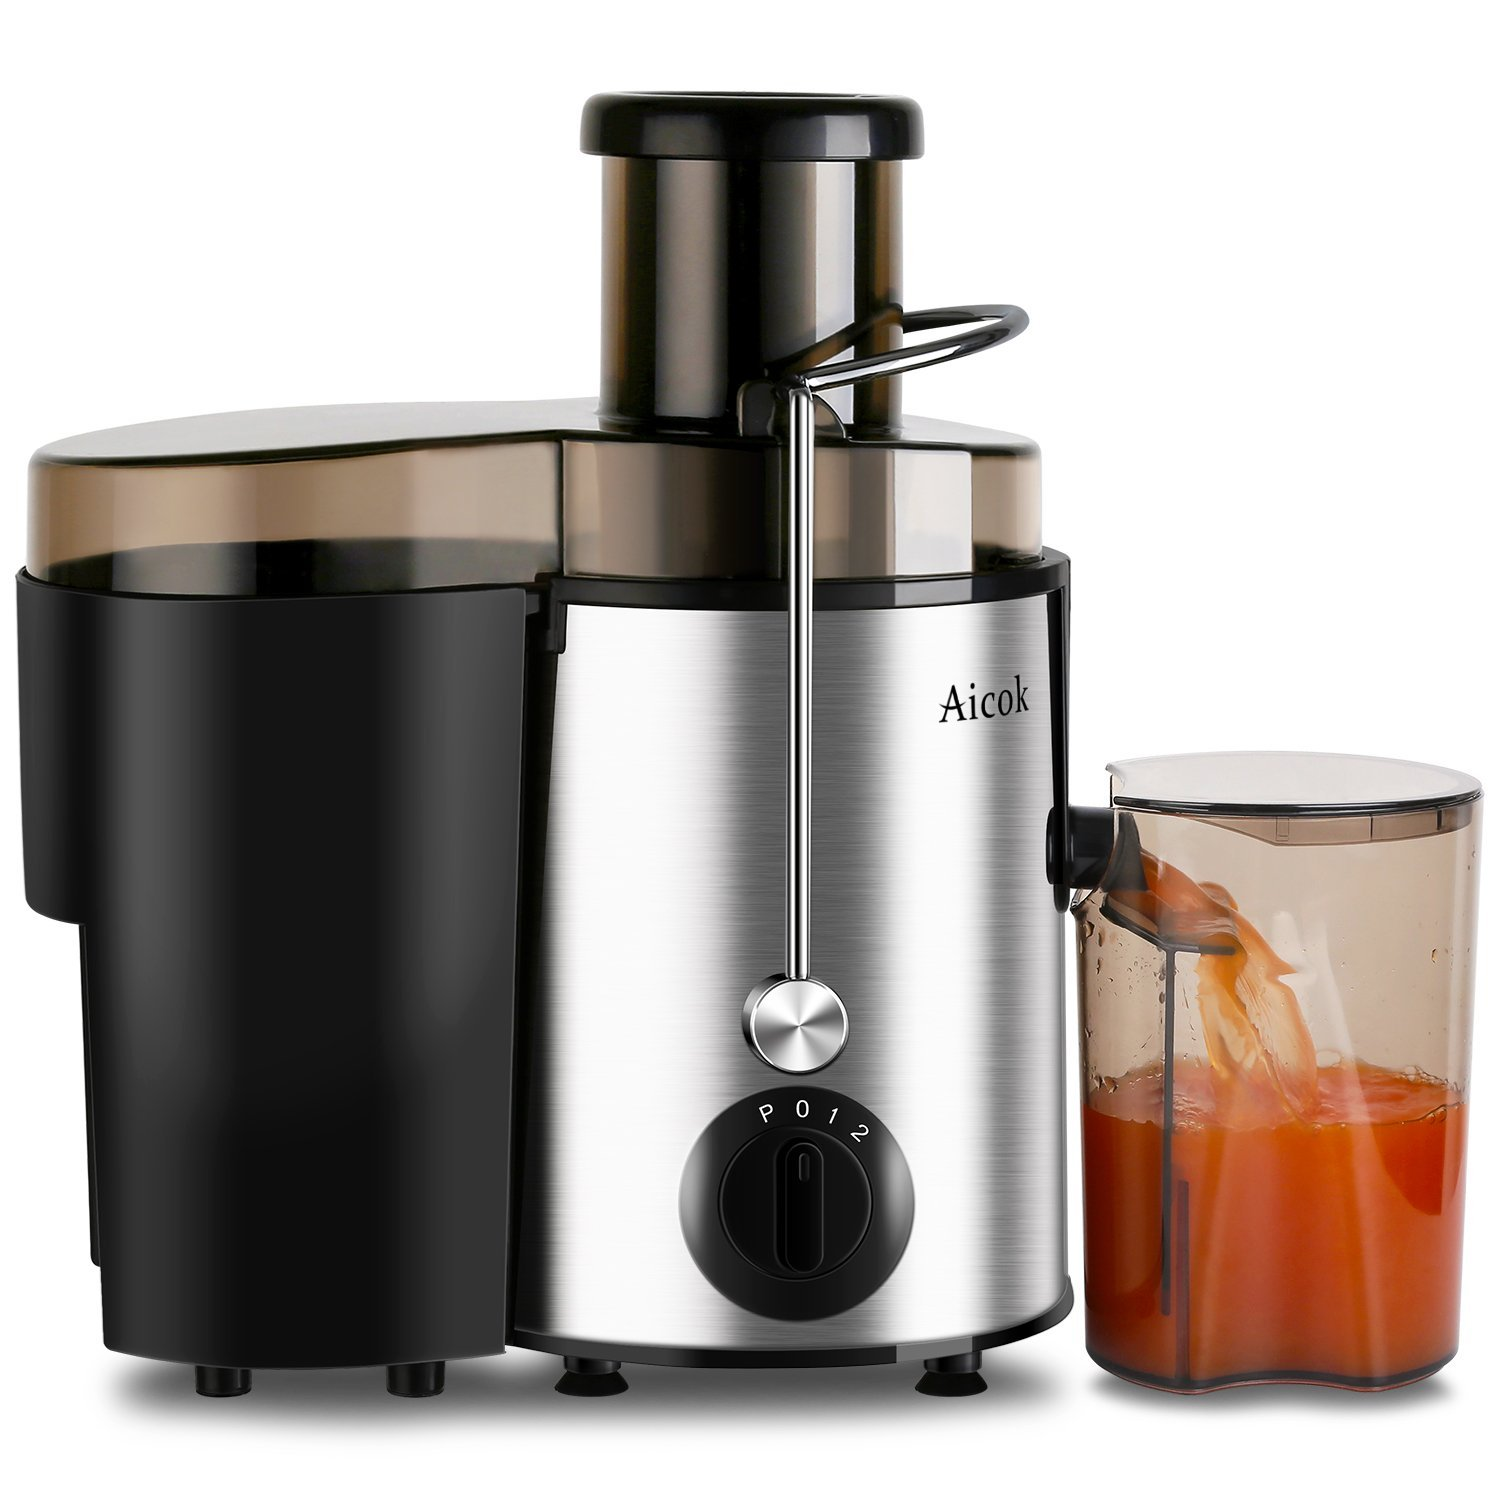 aicok juicer 001 le meilleur des centrifugeuse d couvrez l 39 avis complet. Black Bedroom Furniture Sets. Home Design Ideas